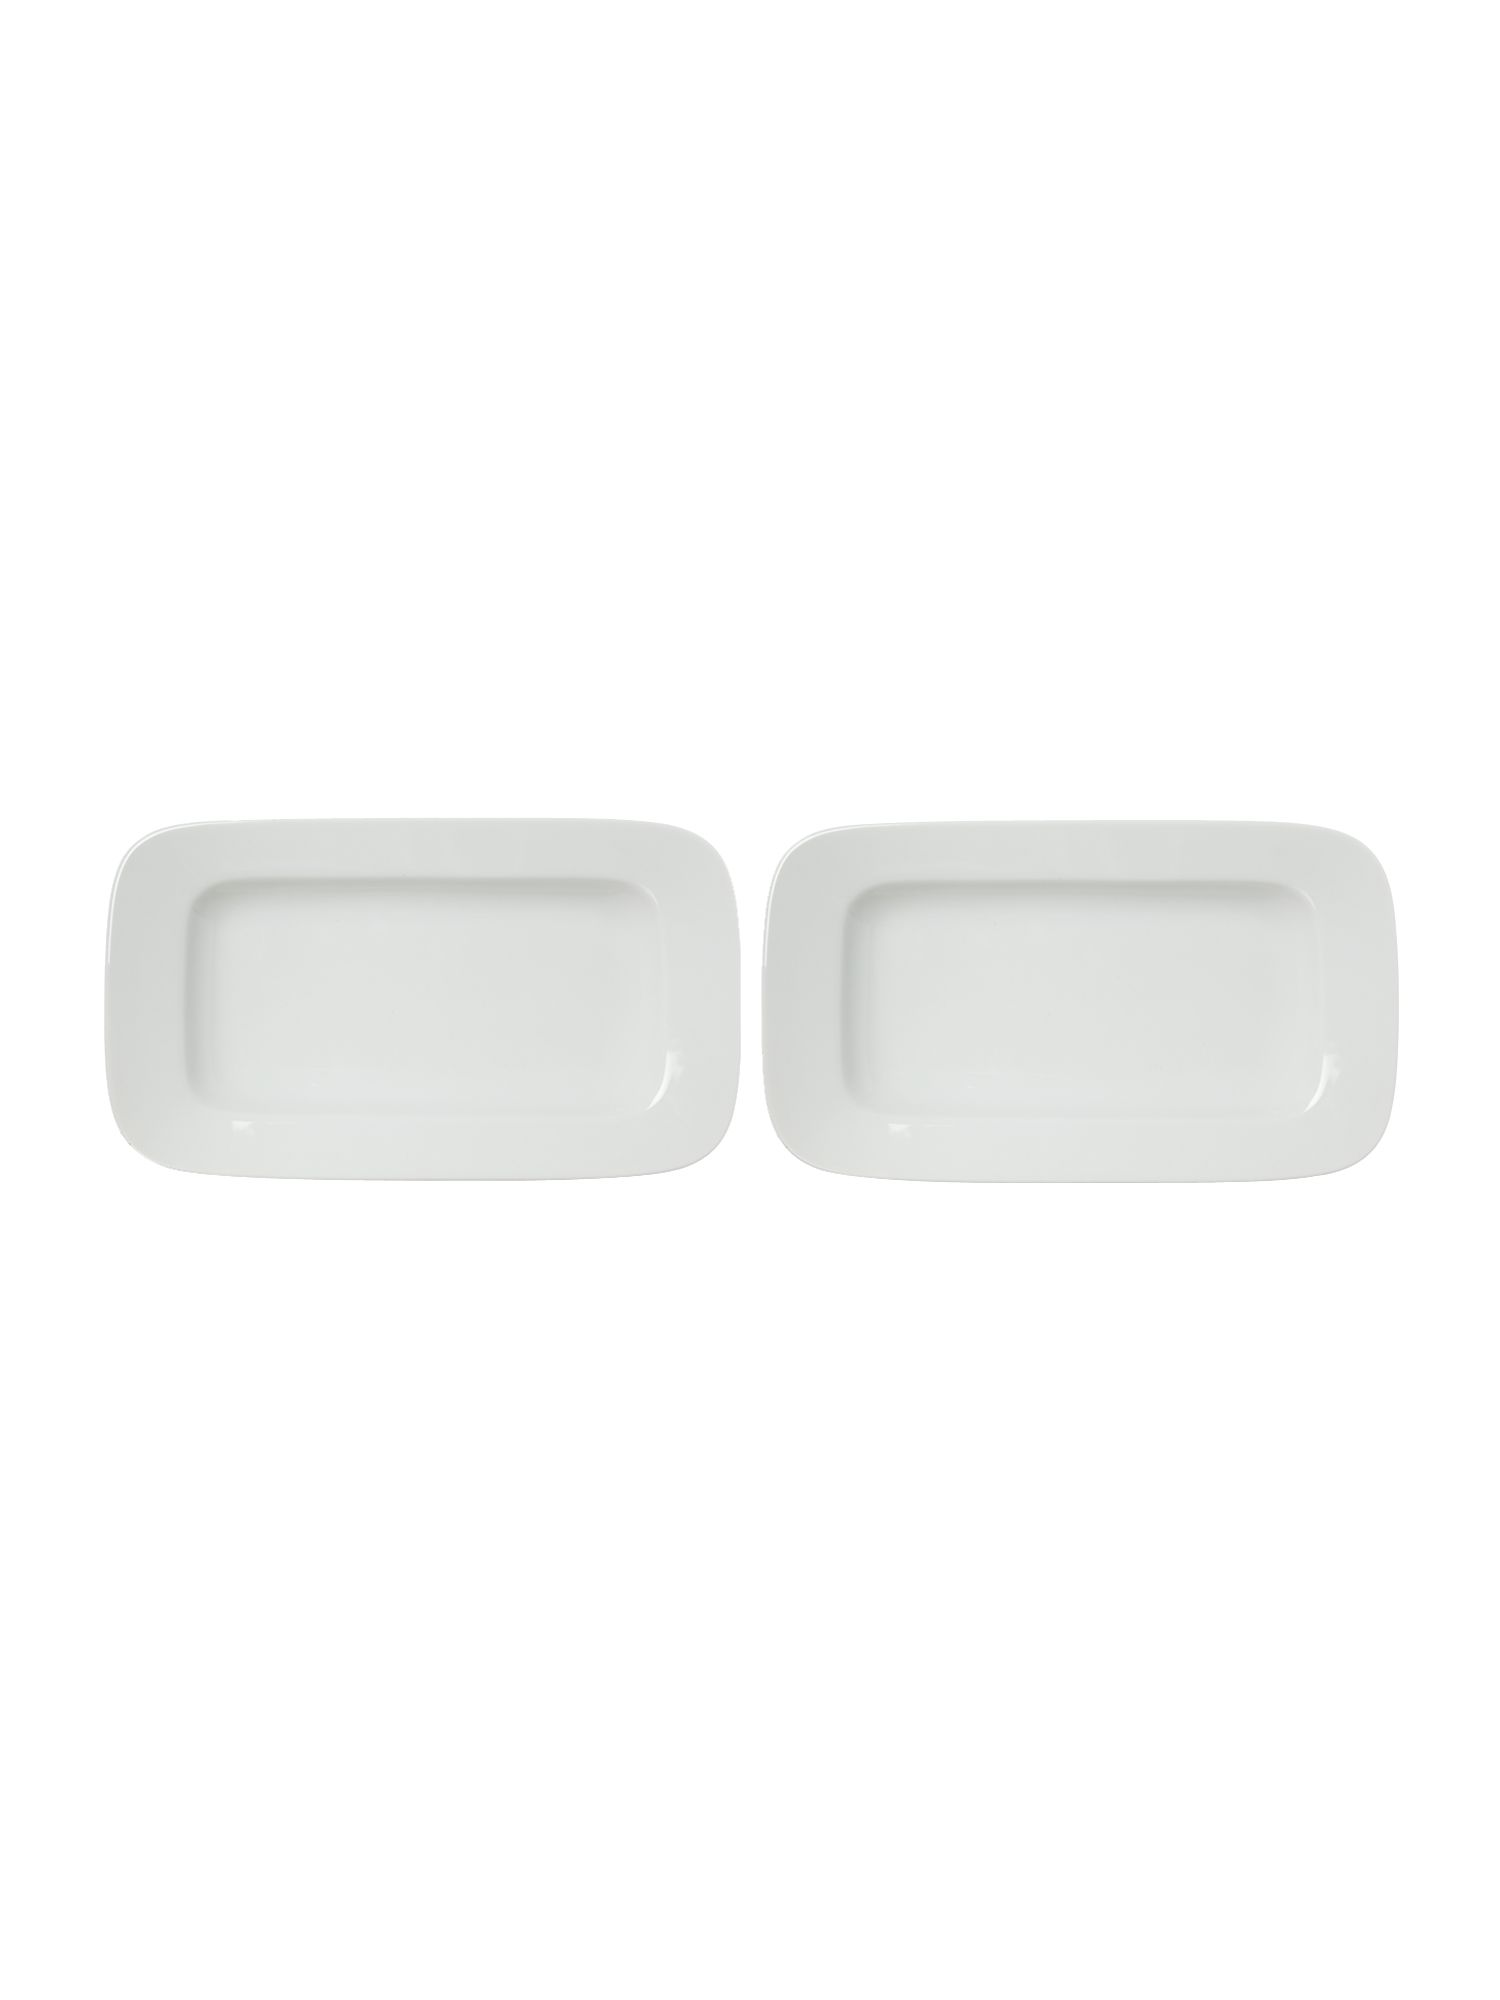 Dine Rectangular Dish, set of 2